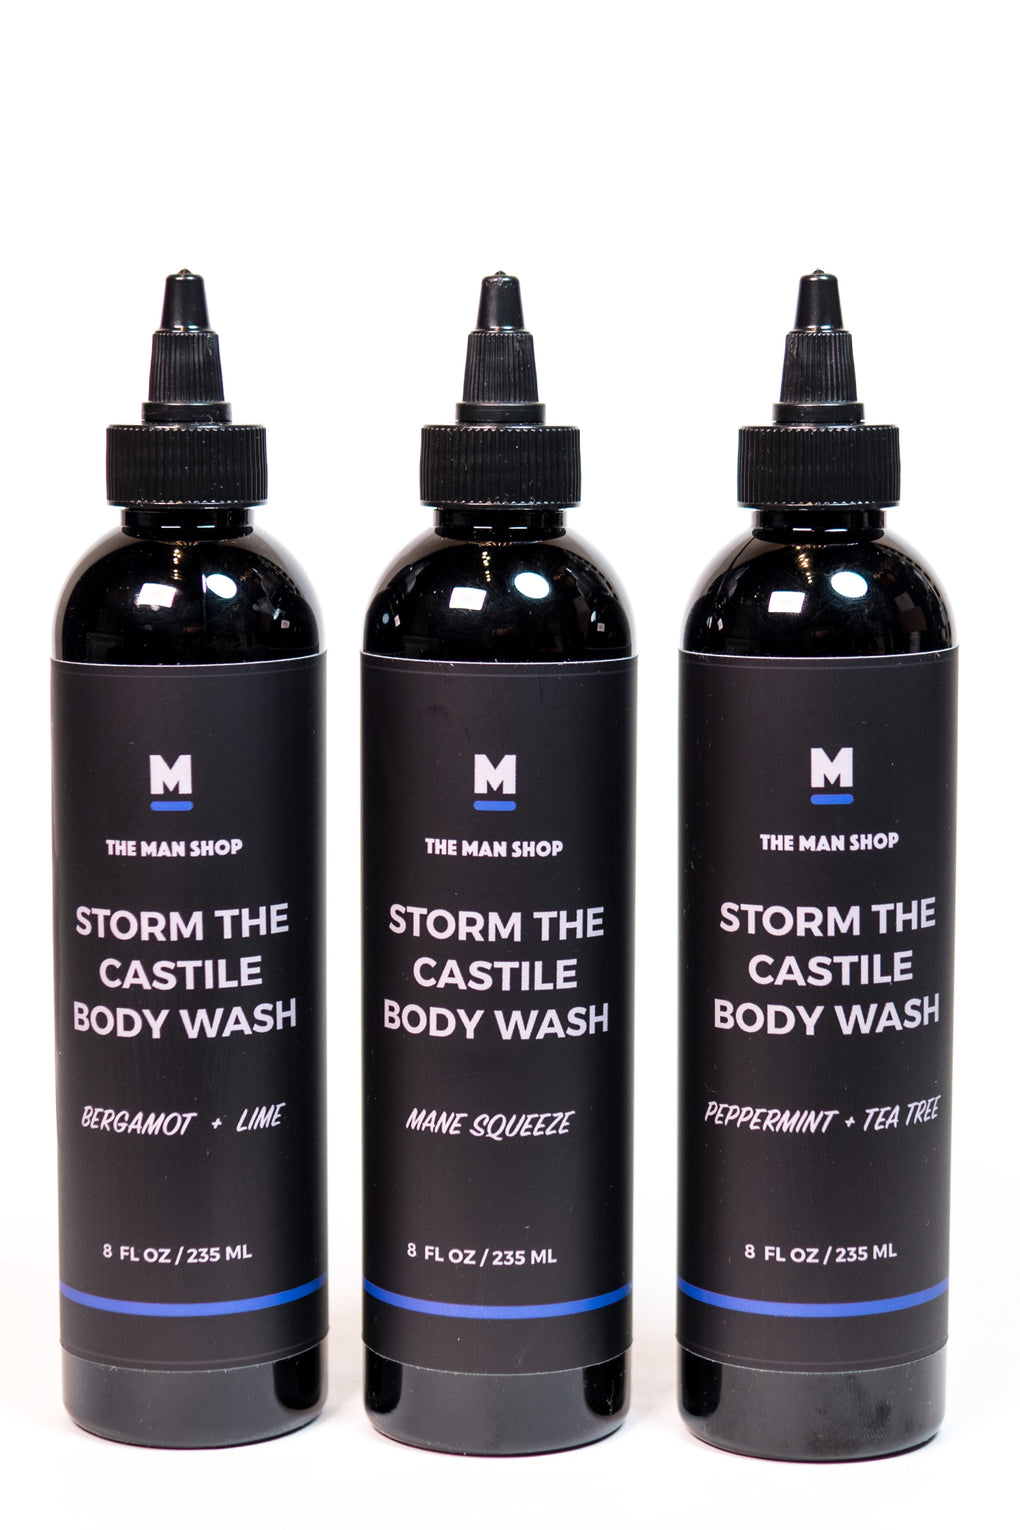 MANE SQUEEZE STORM THE CASTILE BODY WASH